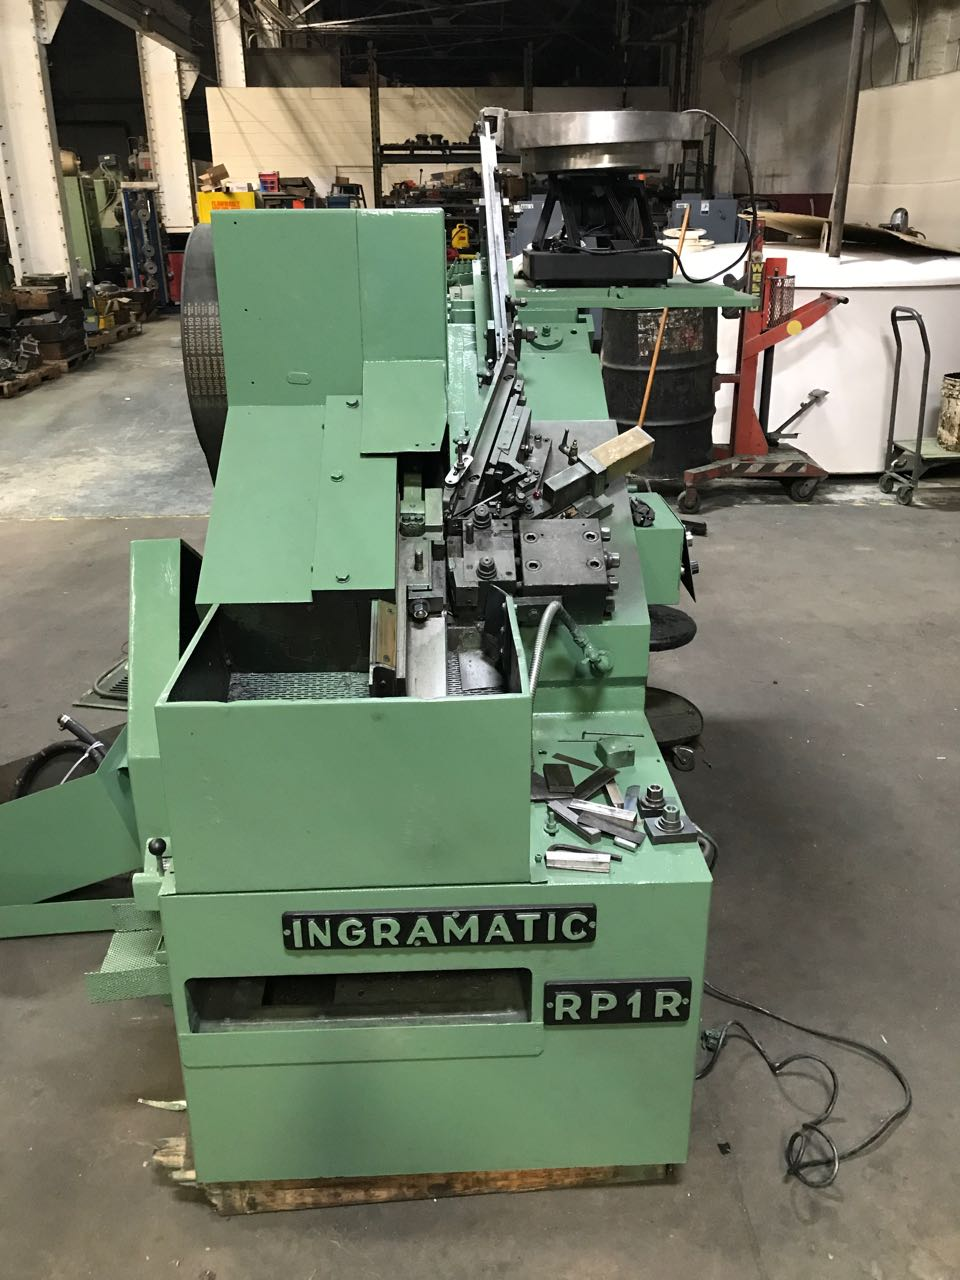 Ingramatic RP1R Thread Roller